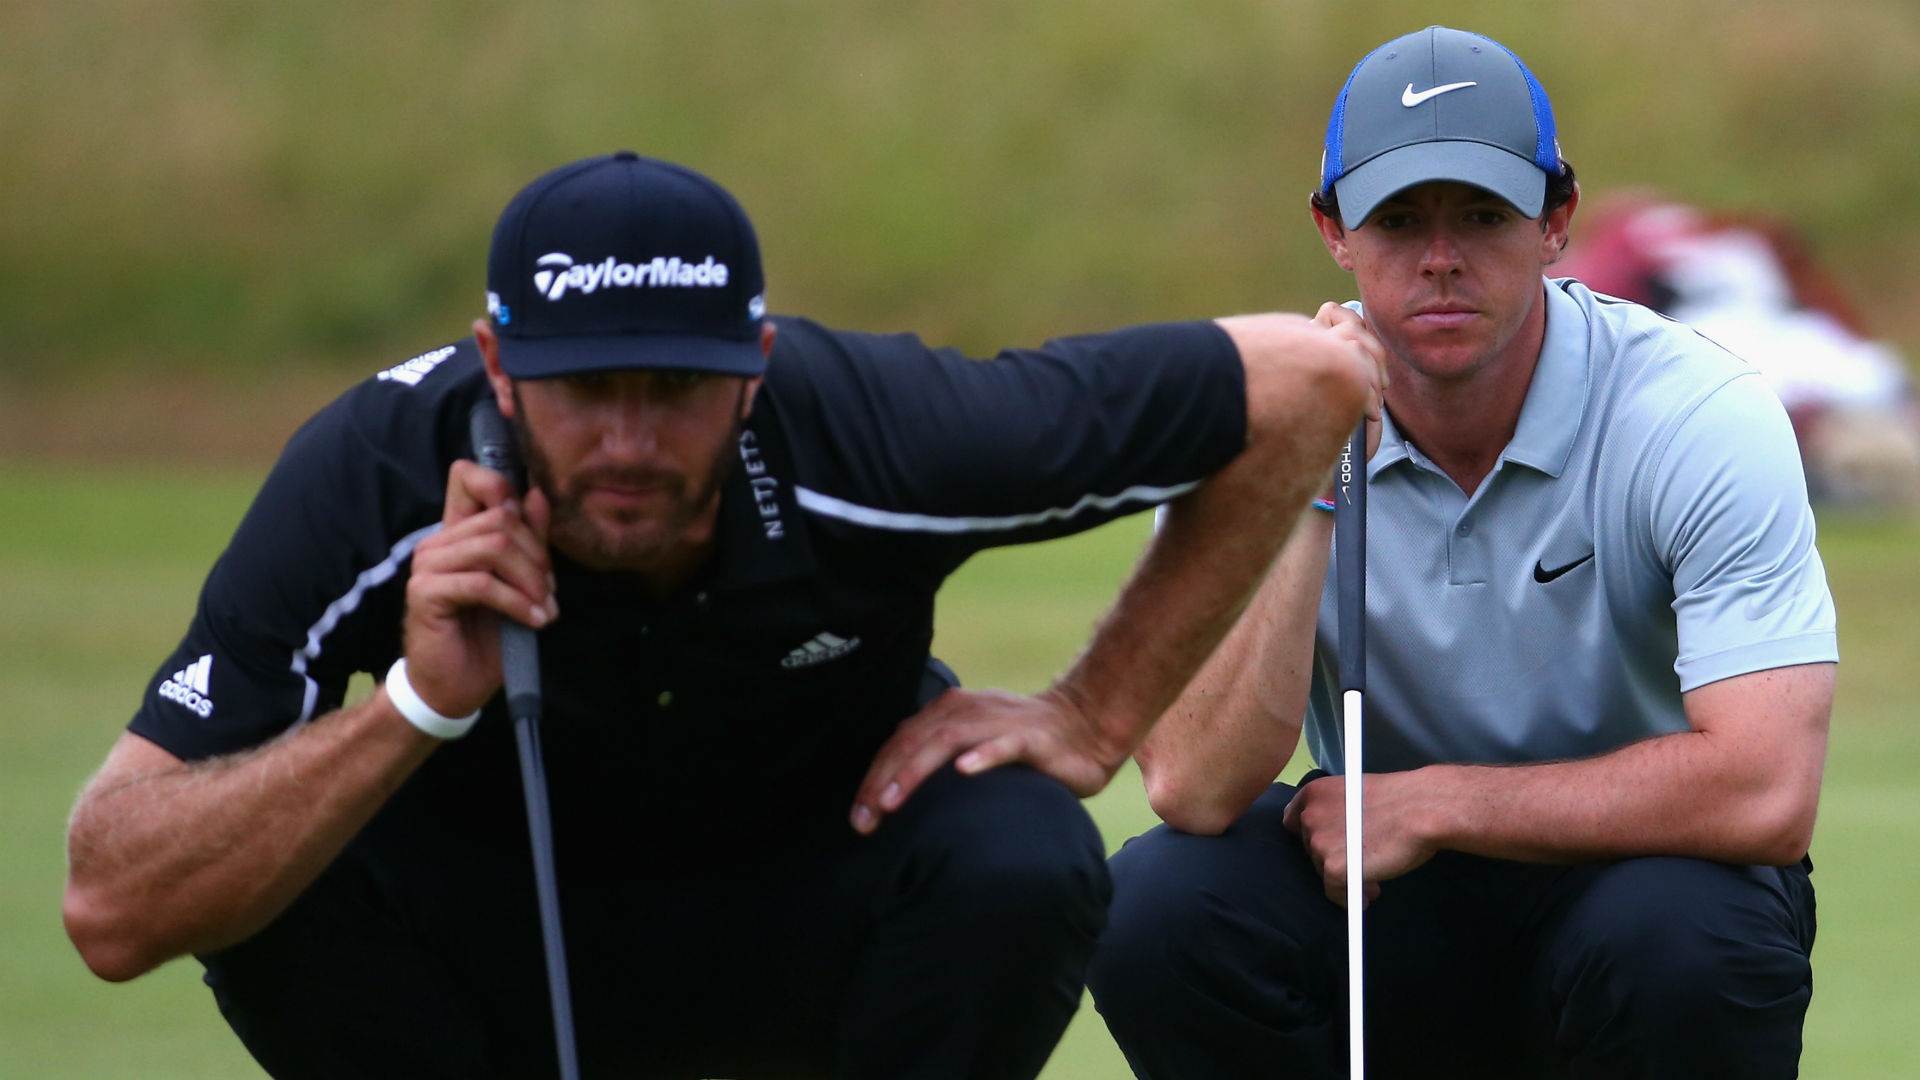 Coronavirus: McIlroy and Johnson to team up in $3m charity skins event